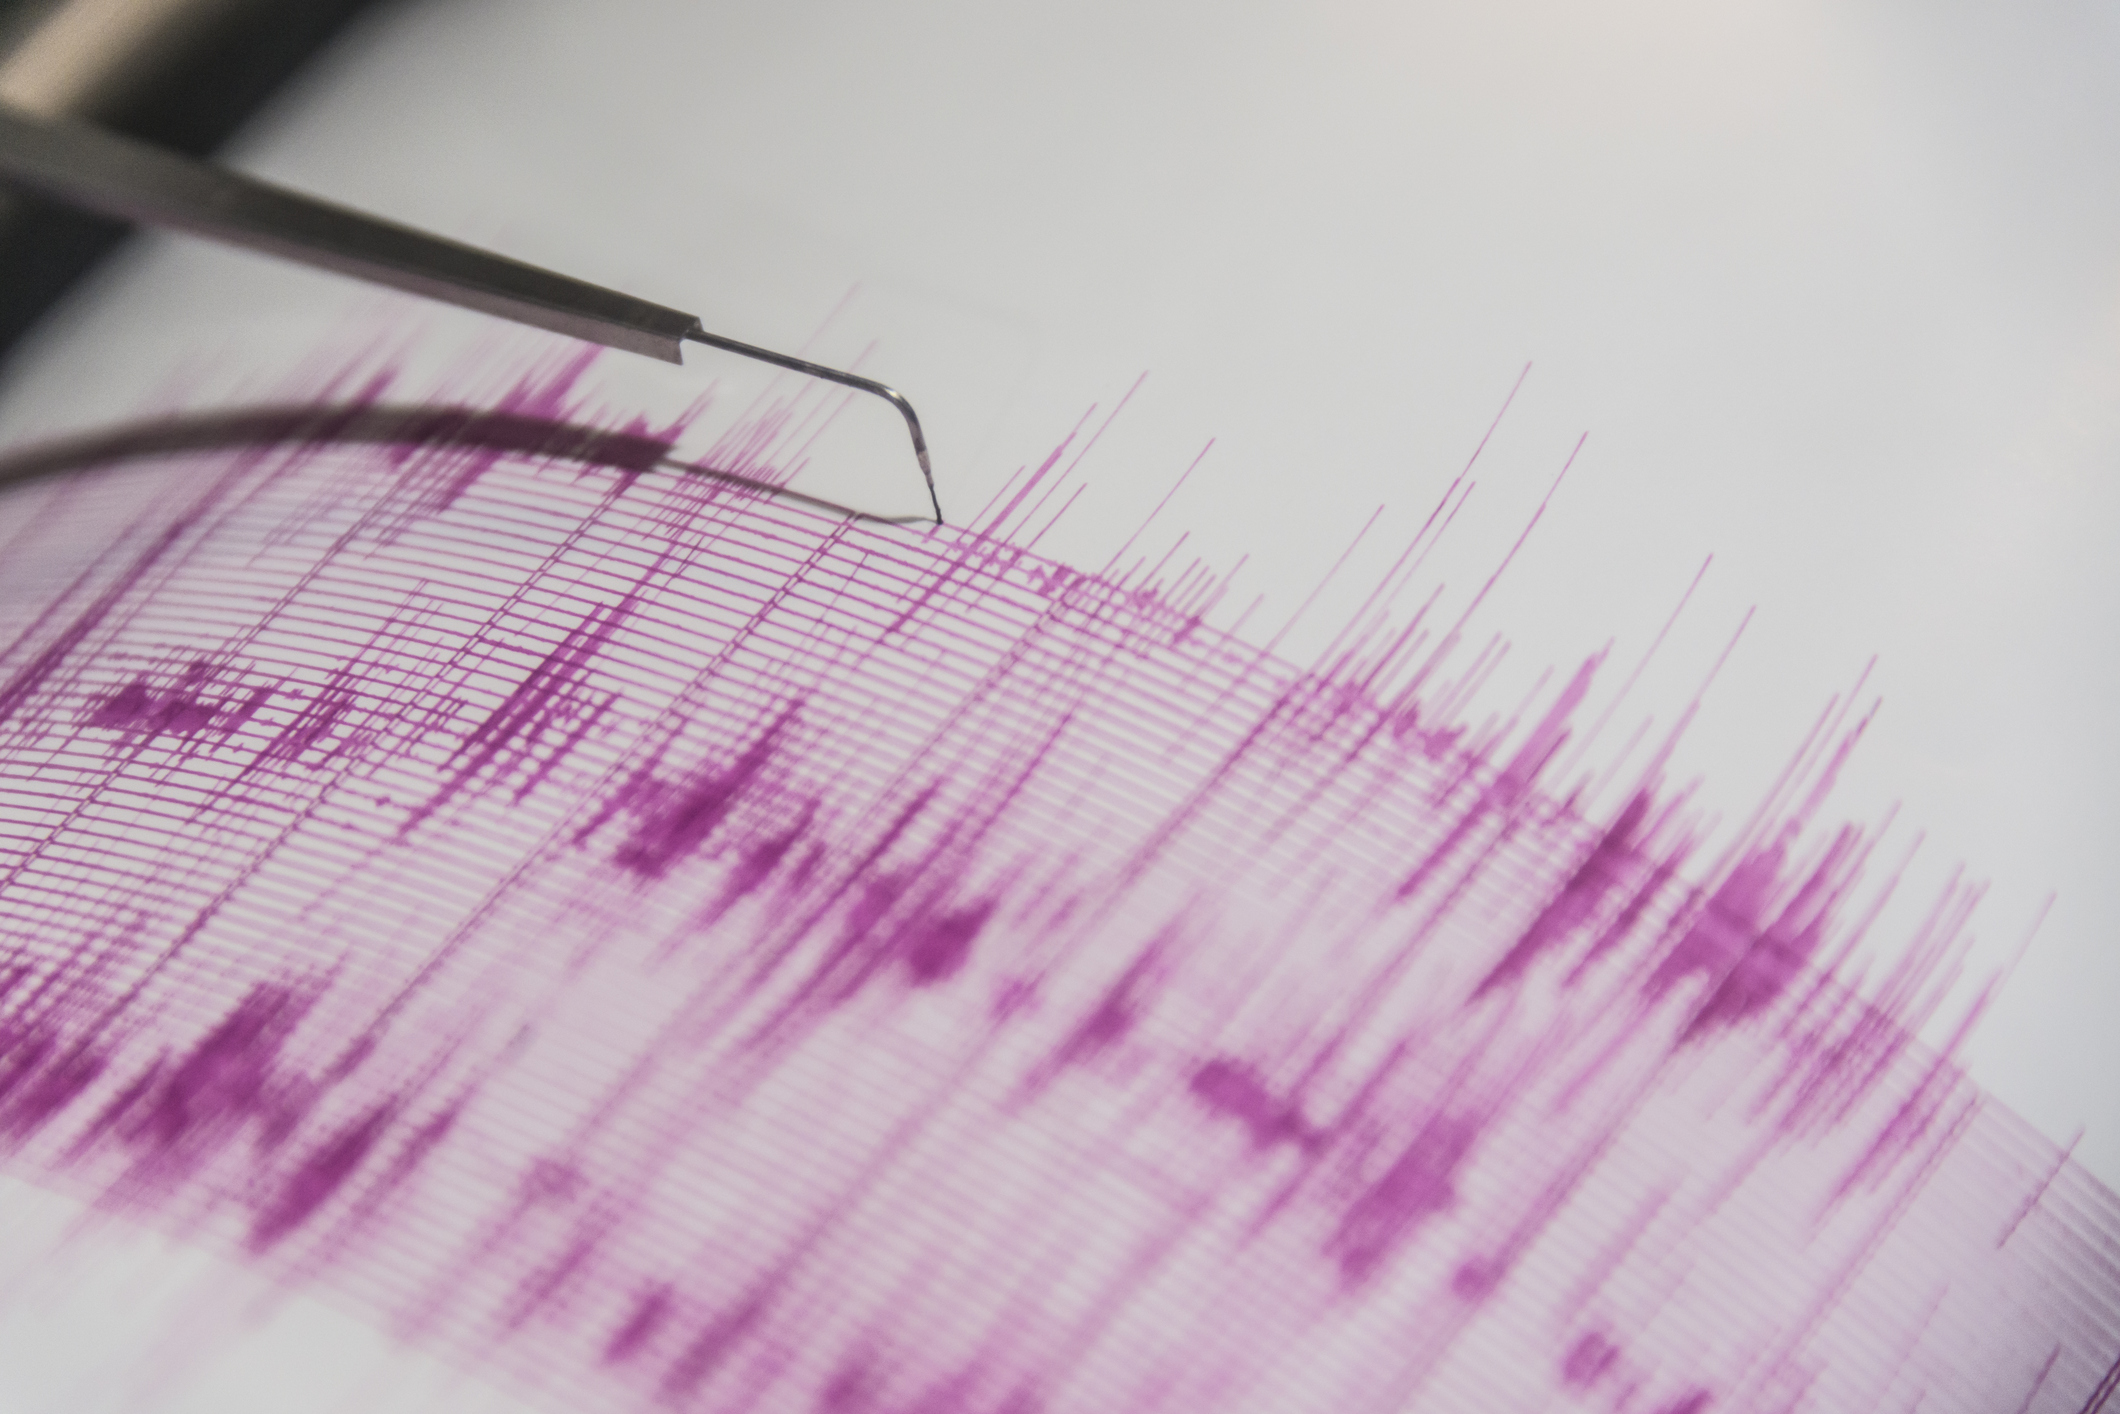 How often do earthquakes happen in the UK and why?